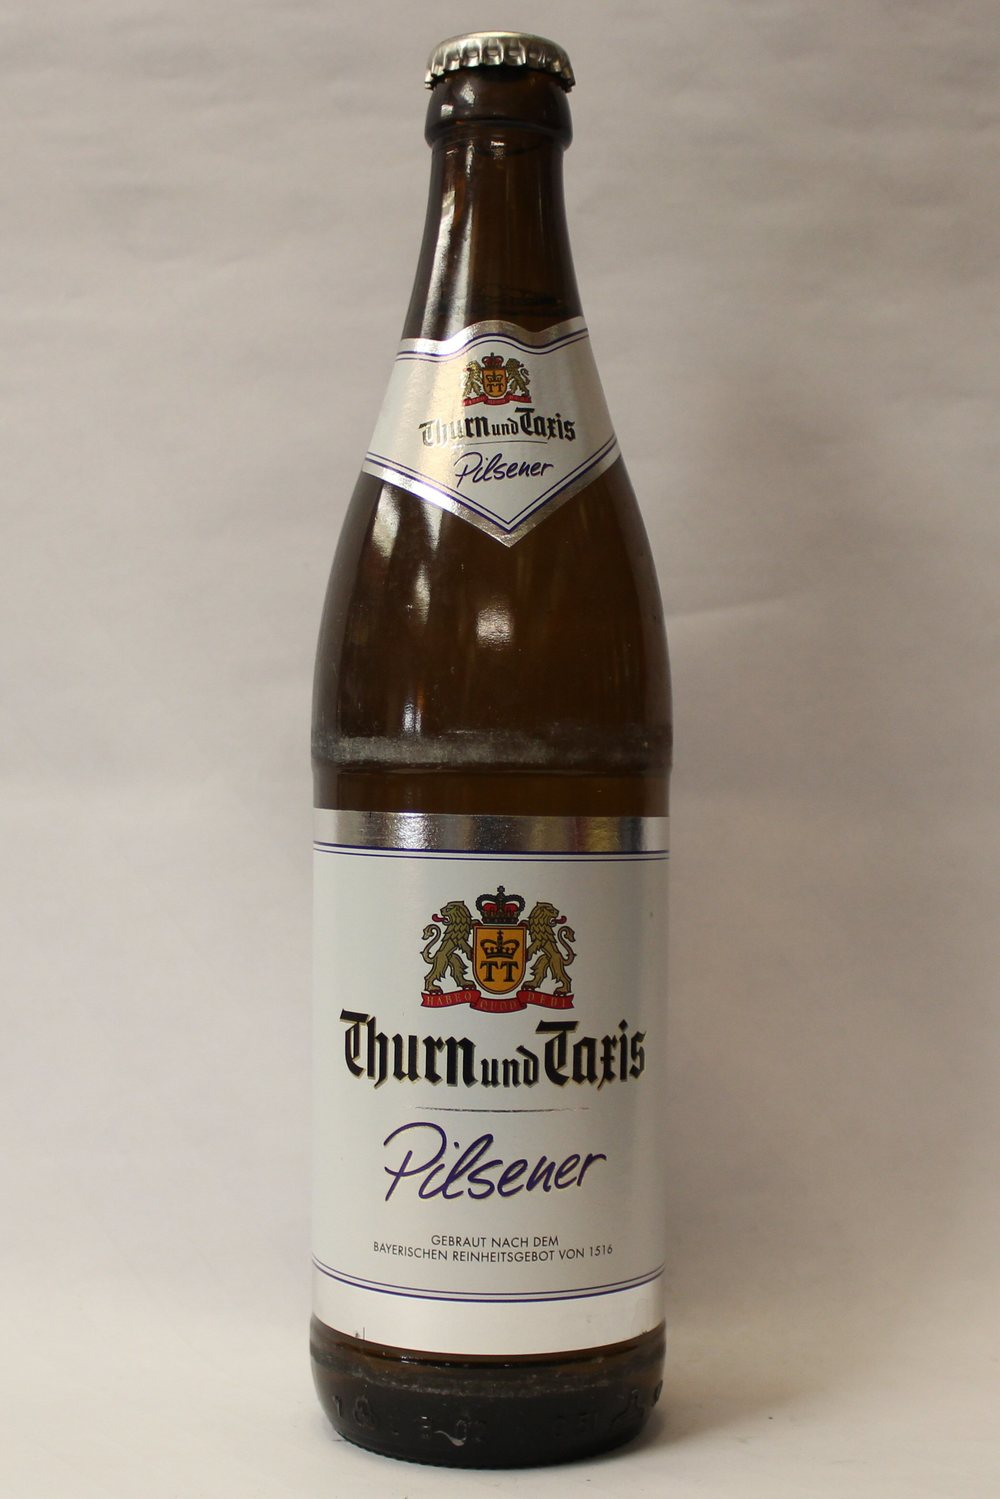 THURN and TARXI-Pilsener.jpg